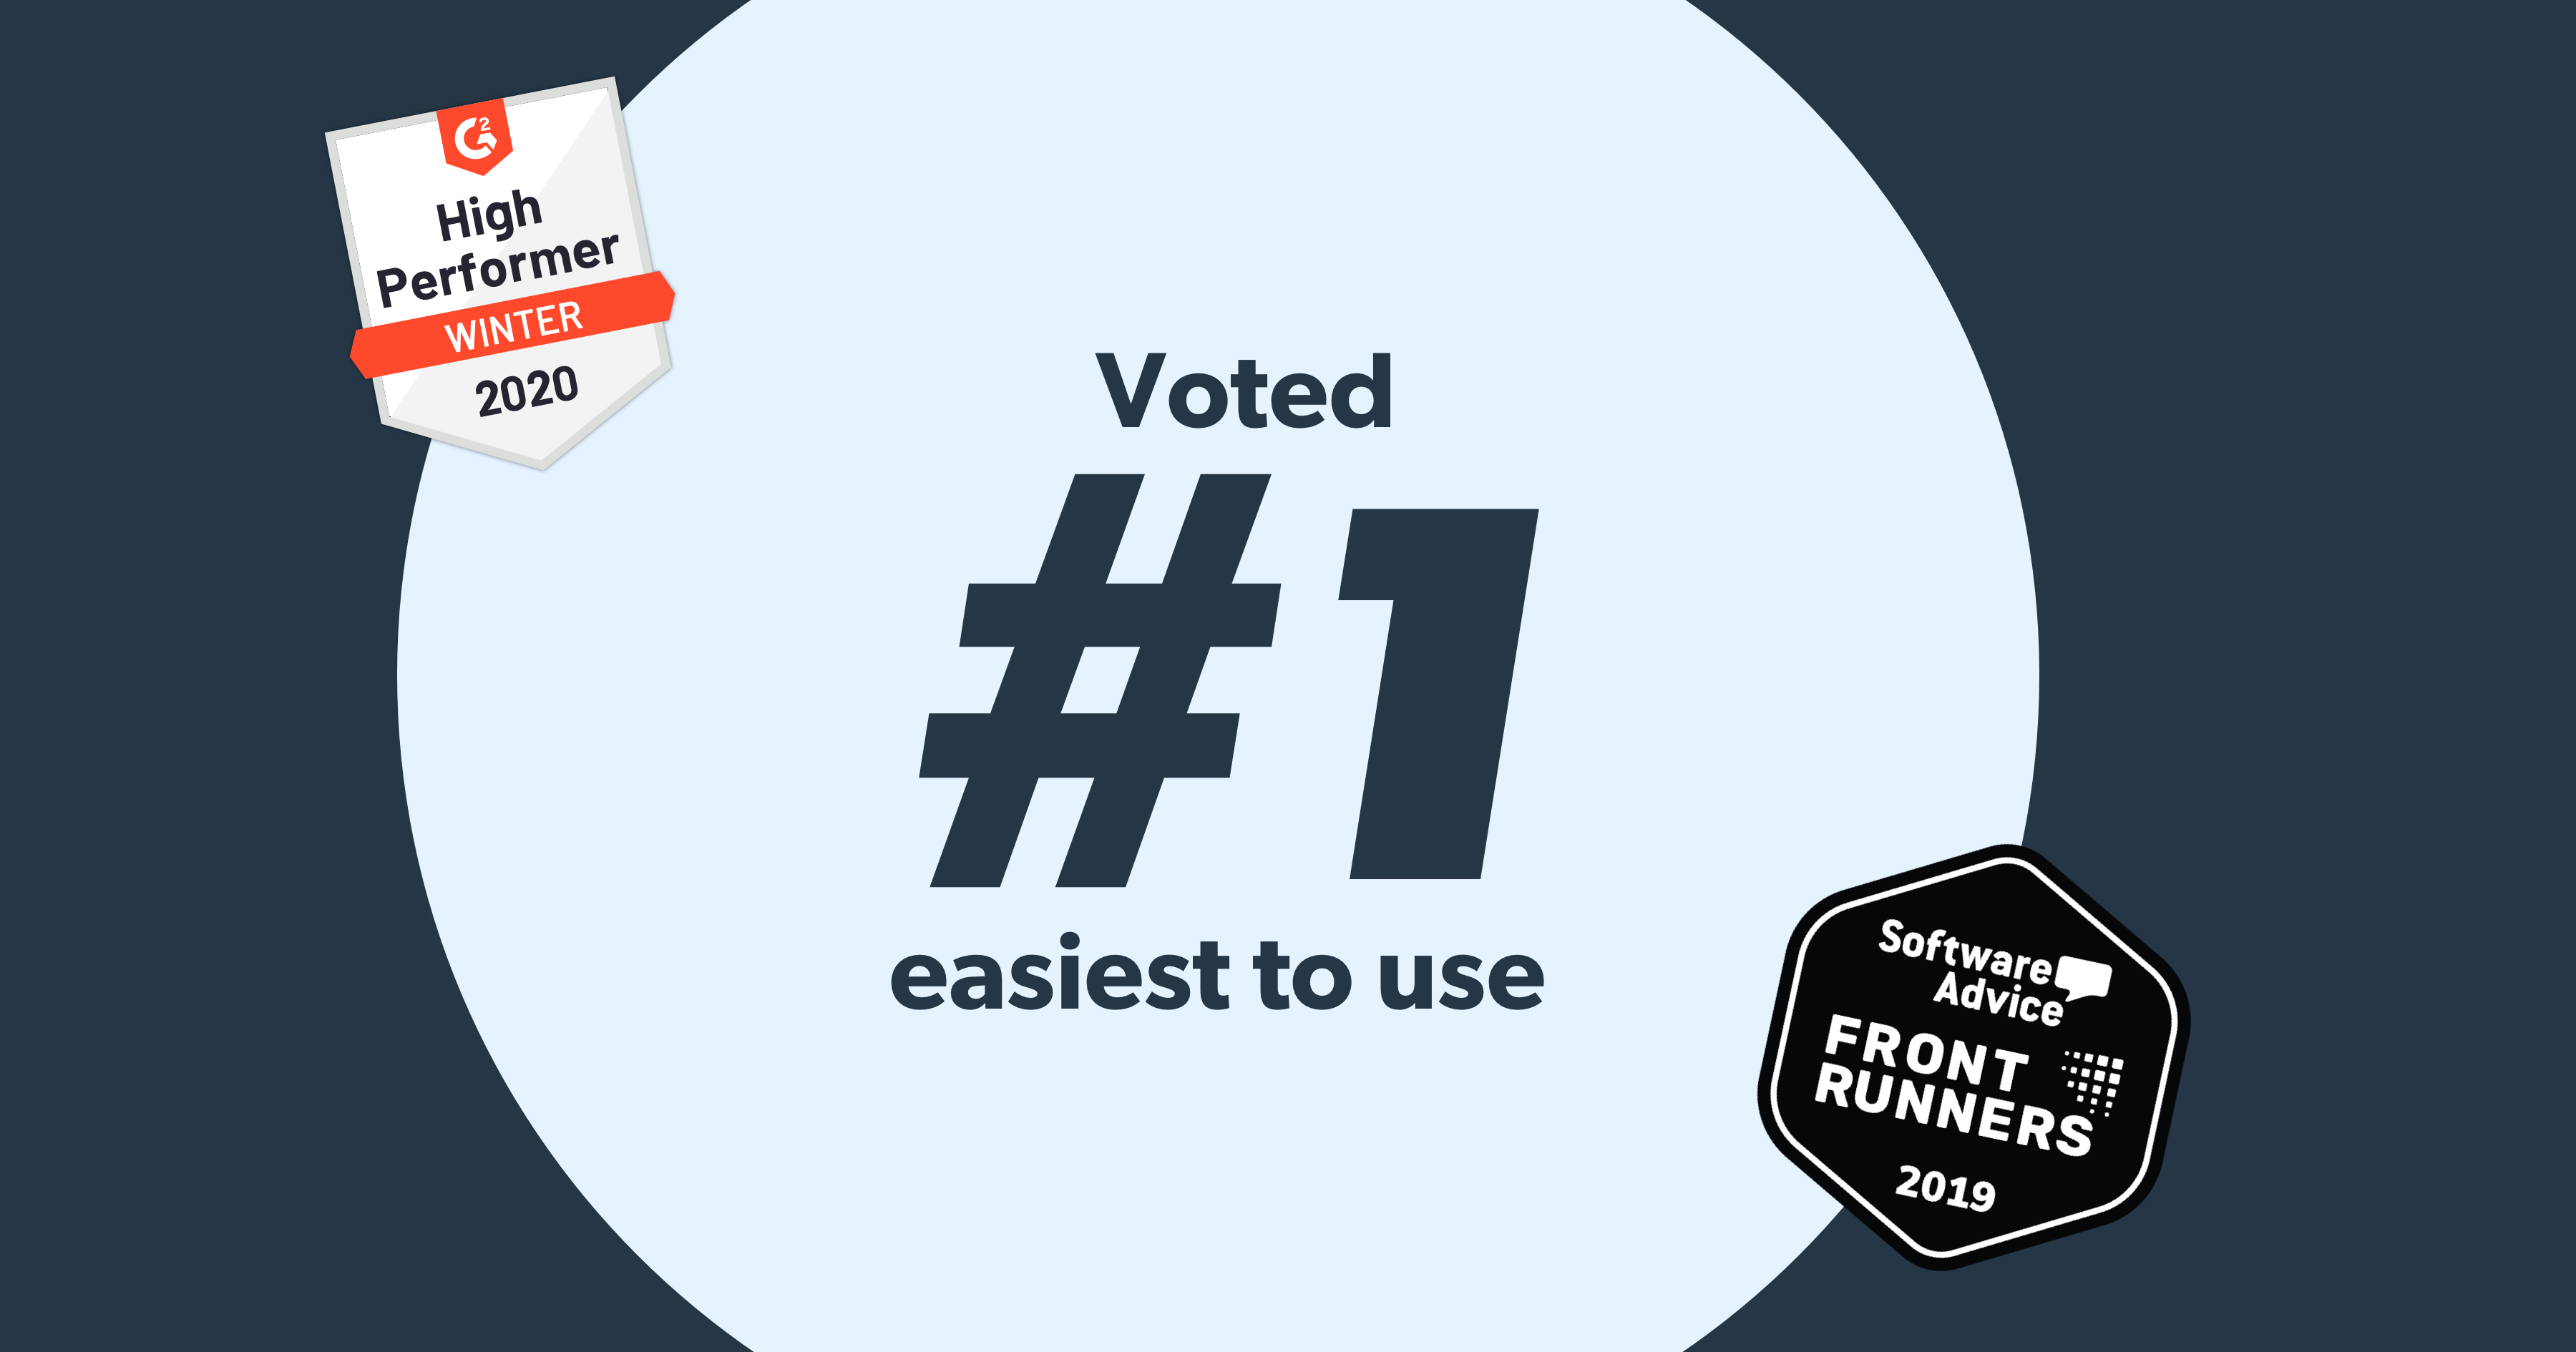 voted-easiest-to-use